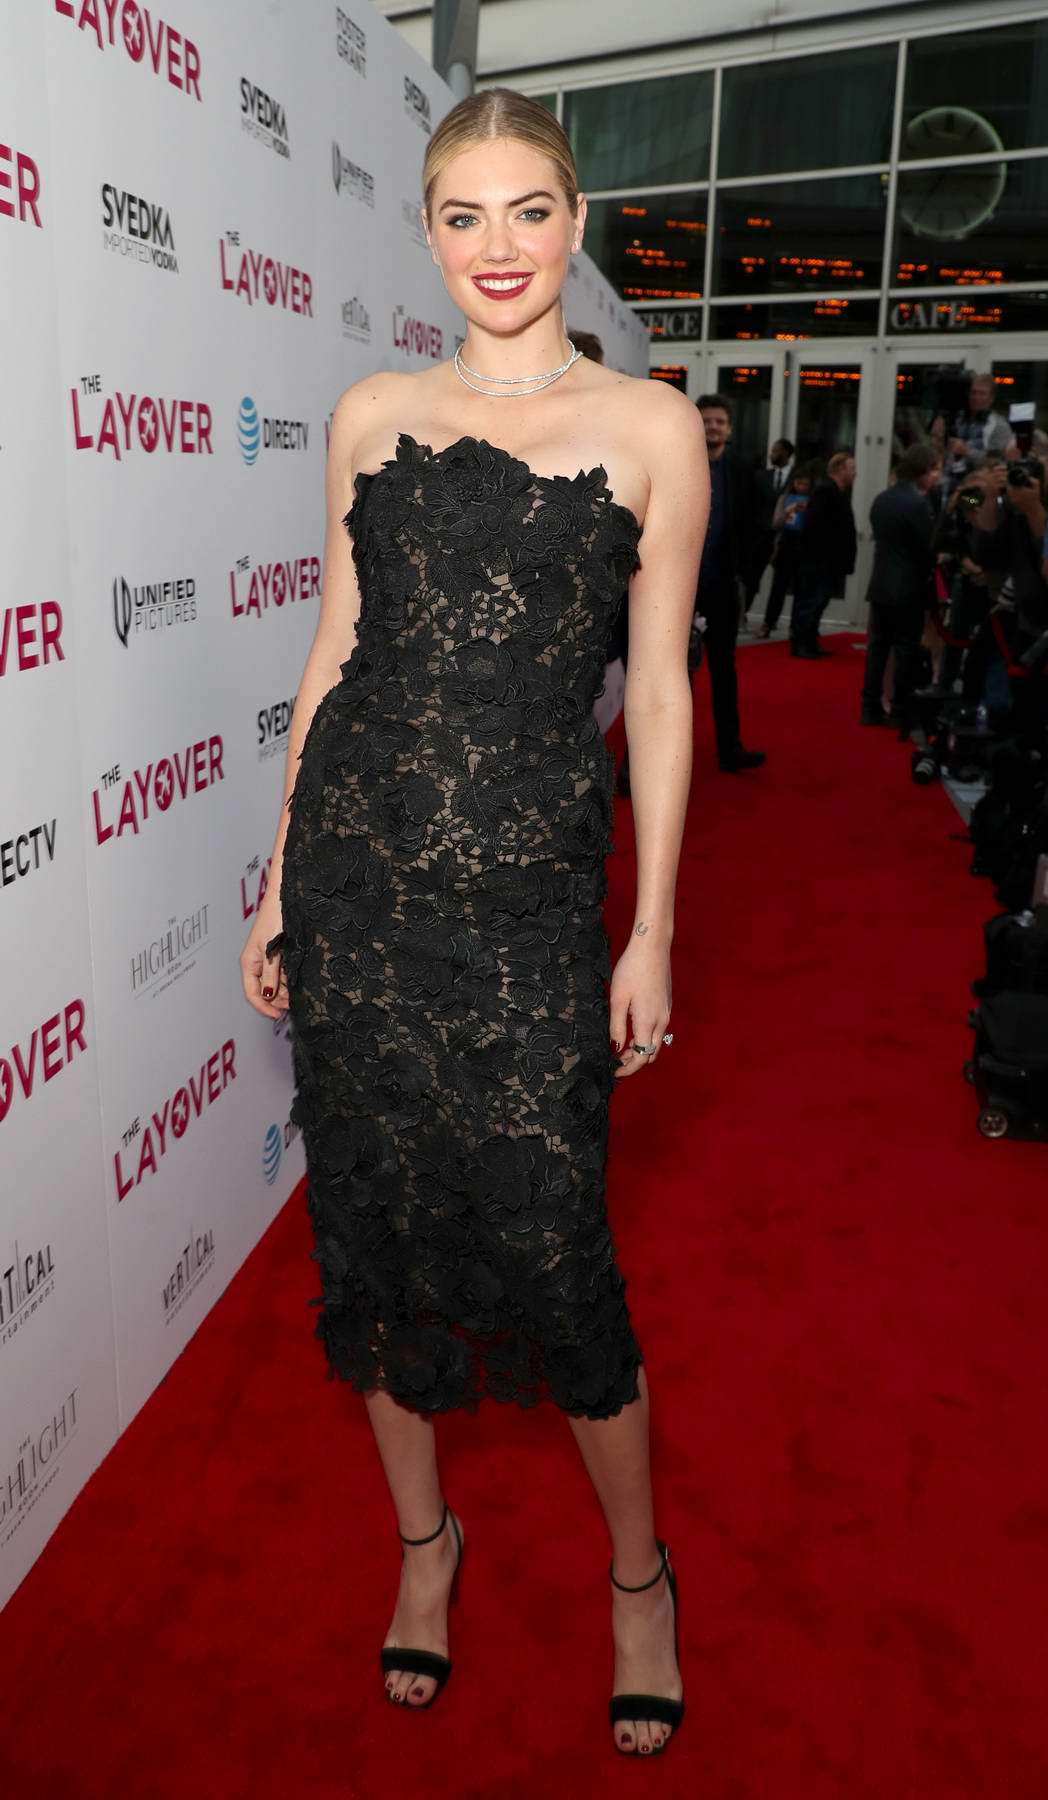 Kate Upton at The Layover film premiere in Los Angeles